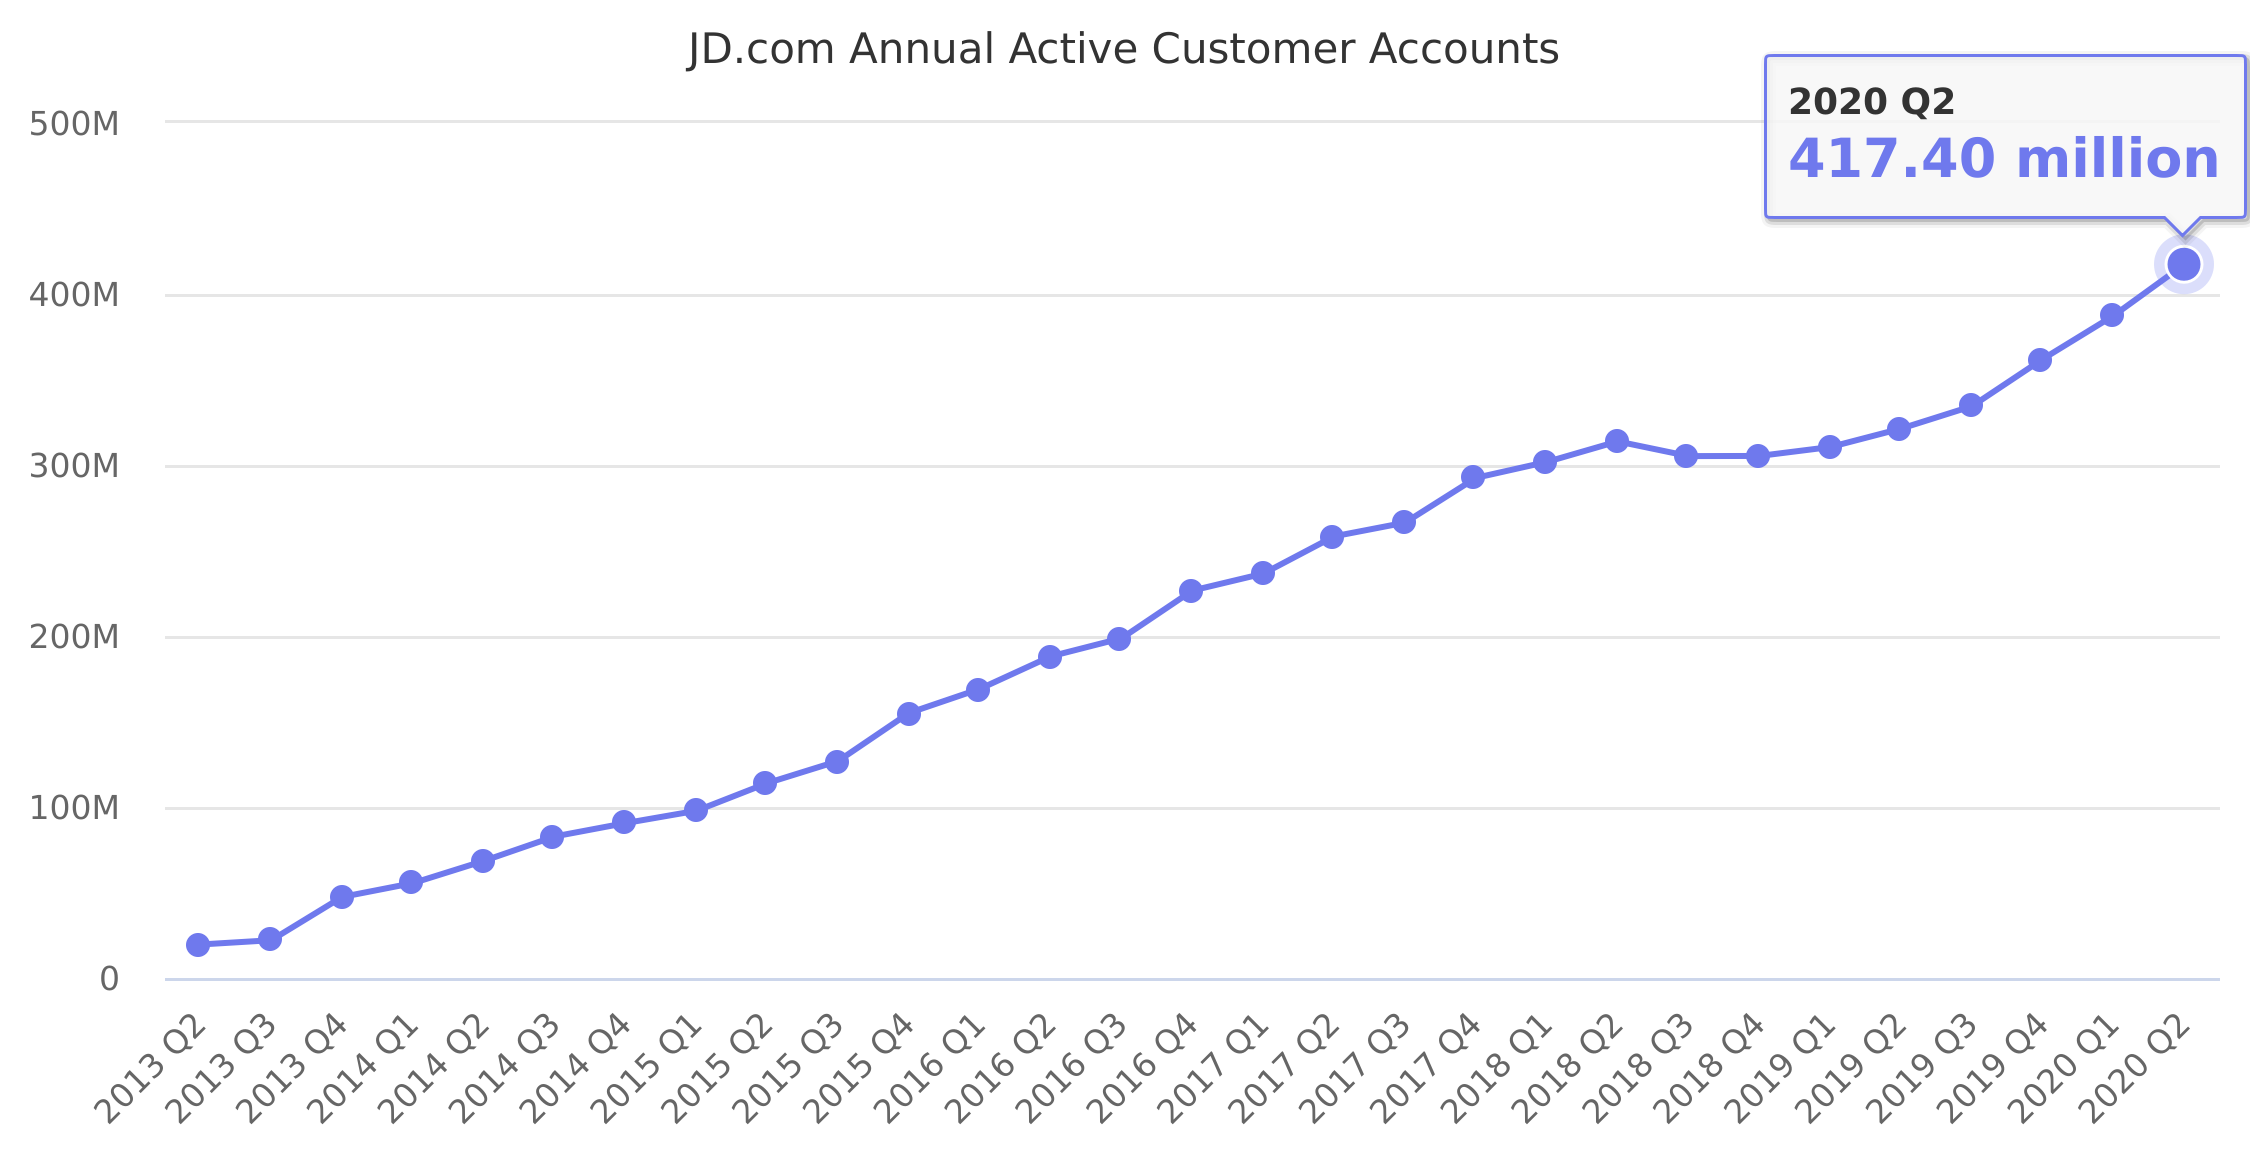 JD.com Annual Active Customer Accounts 2013-2018